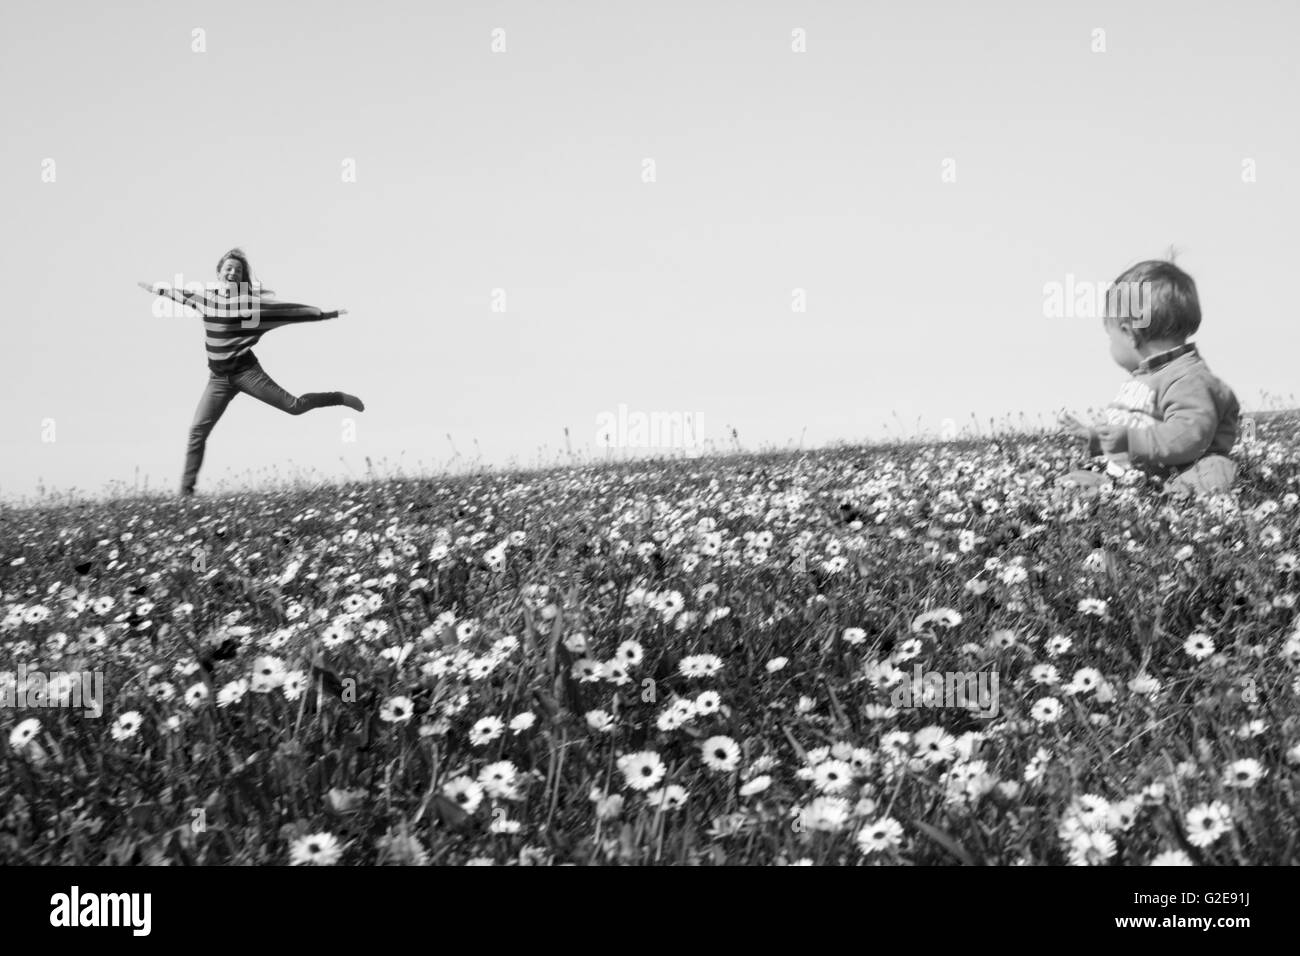 Woman Jumping in Field of Wildflowers with Baby Sitting in Foreground - Stock Image